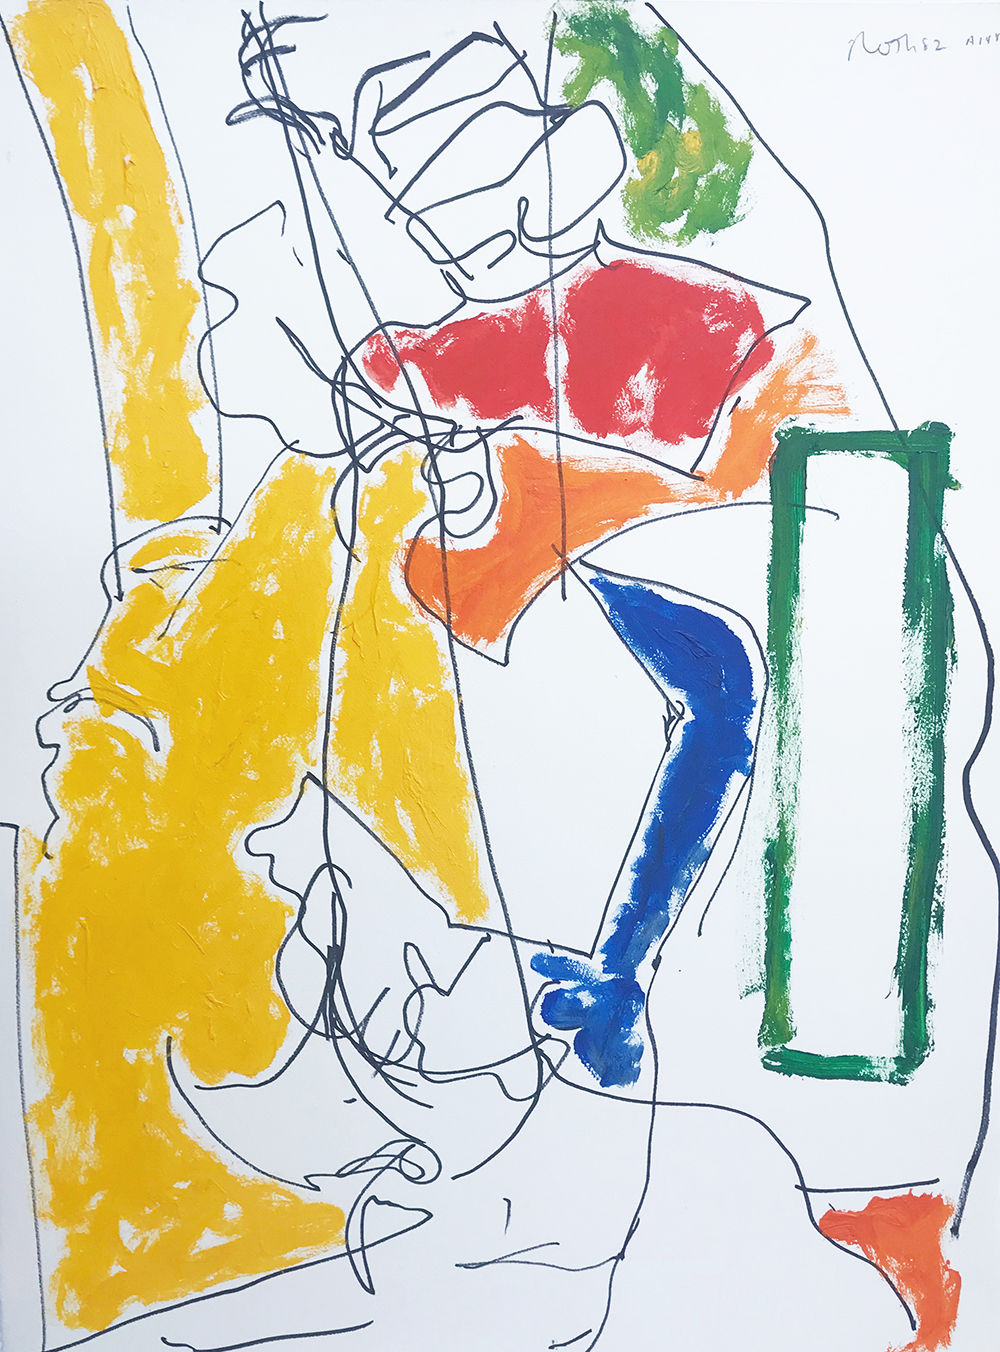 #3055  Untitled ,  Acrylic and marker on paper, 1982, 30 x 22 inches